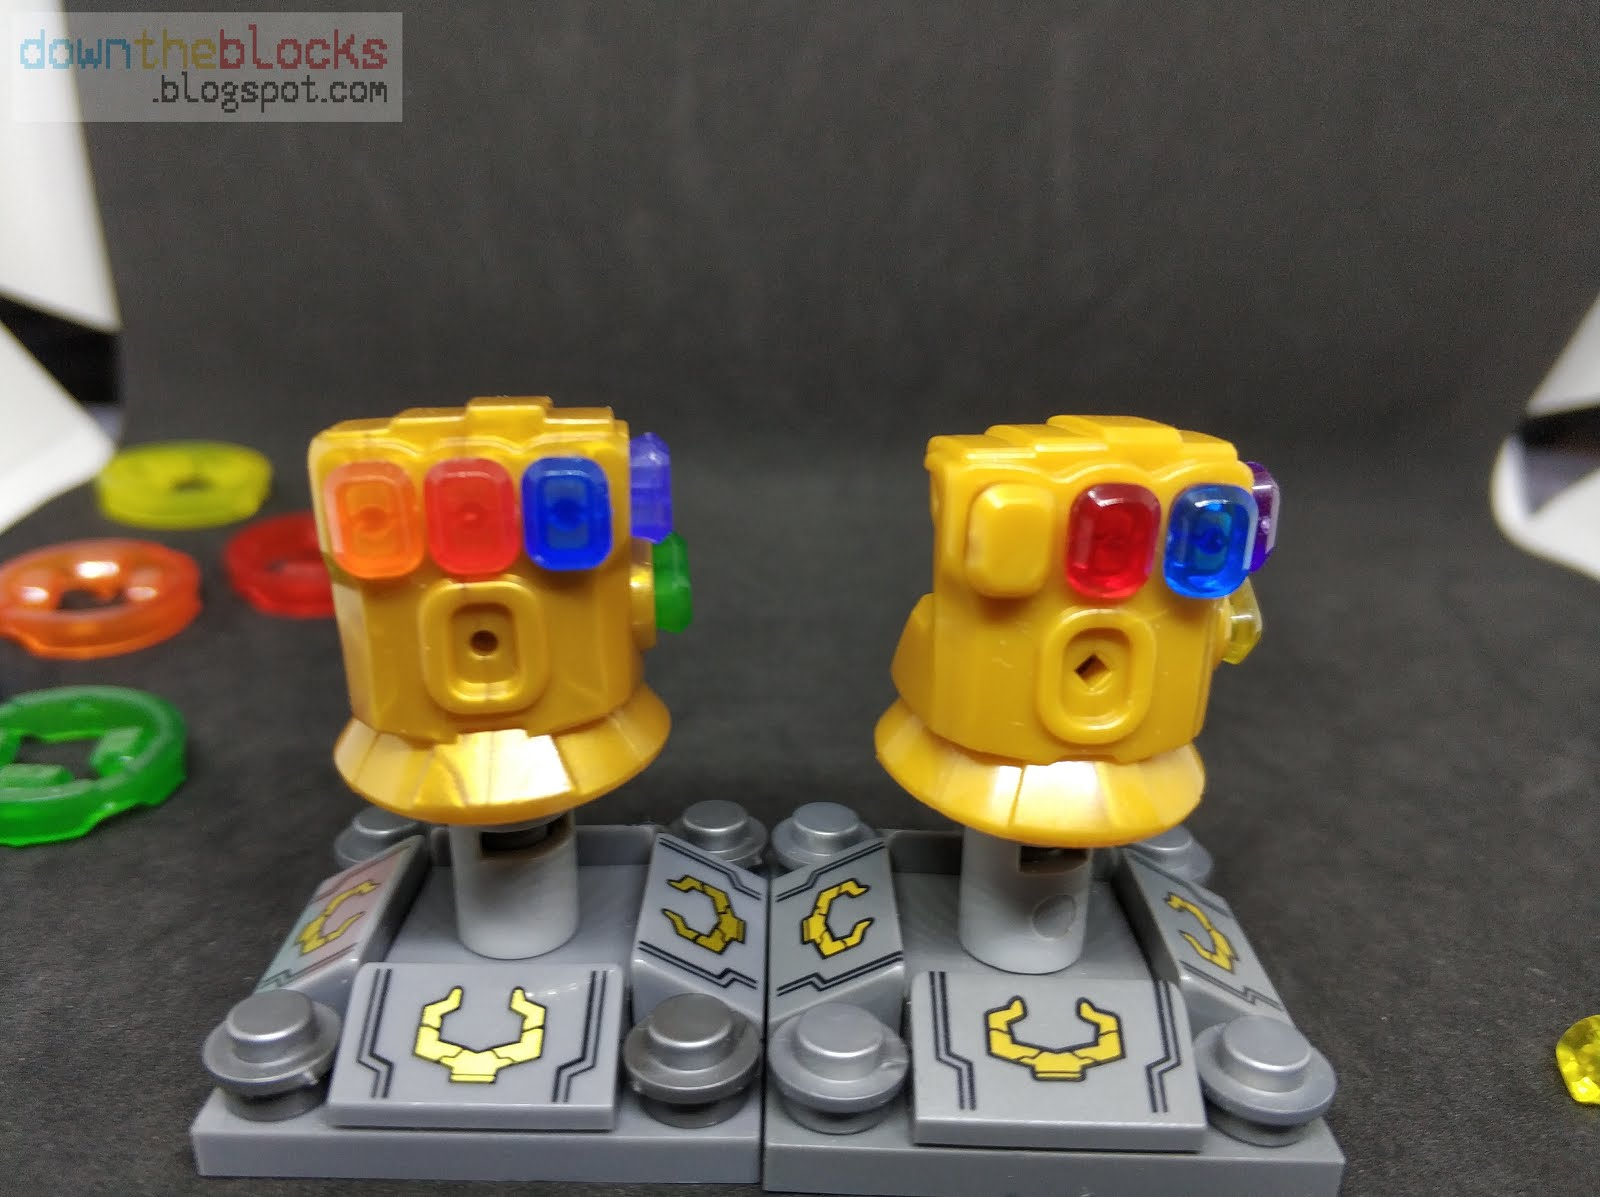 Loz Diamond Blocks Superhero Spm Spec Dan Daftar Harga Terbaru Gift Xl 9640 Another Difference Is That Sys Holes For The Gauntlet Were Circular And Leles Was Square